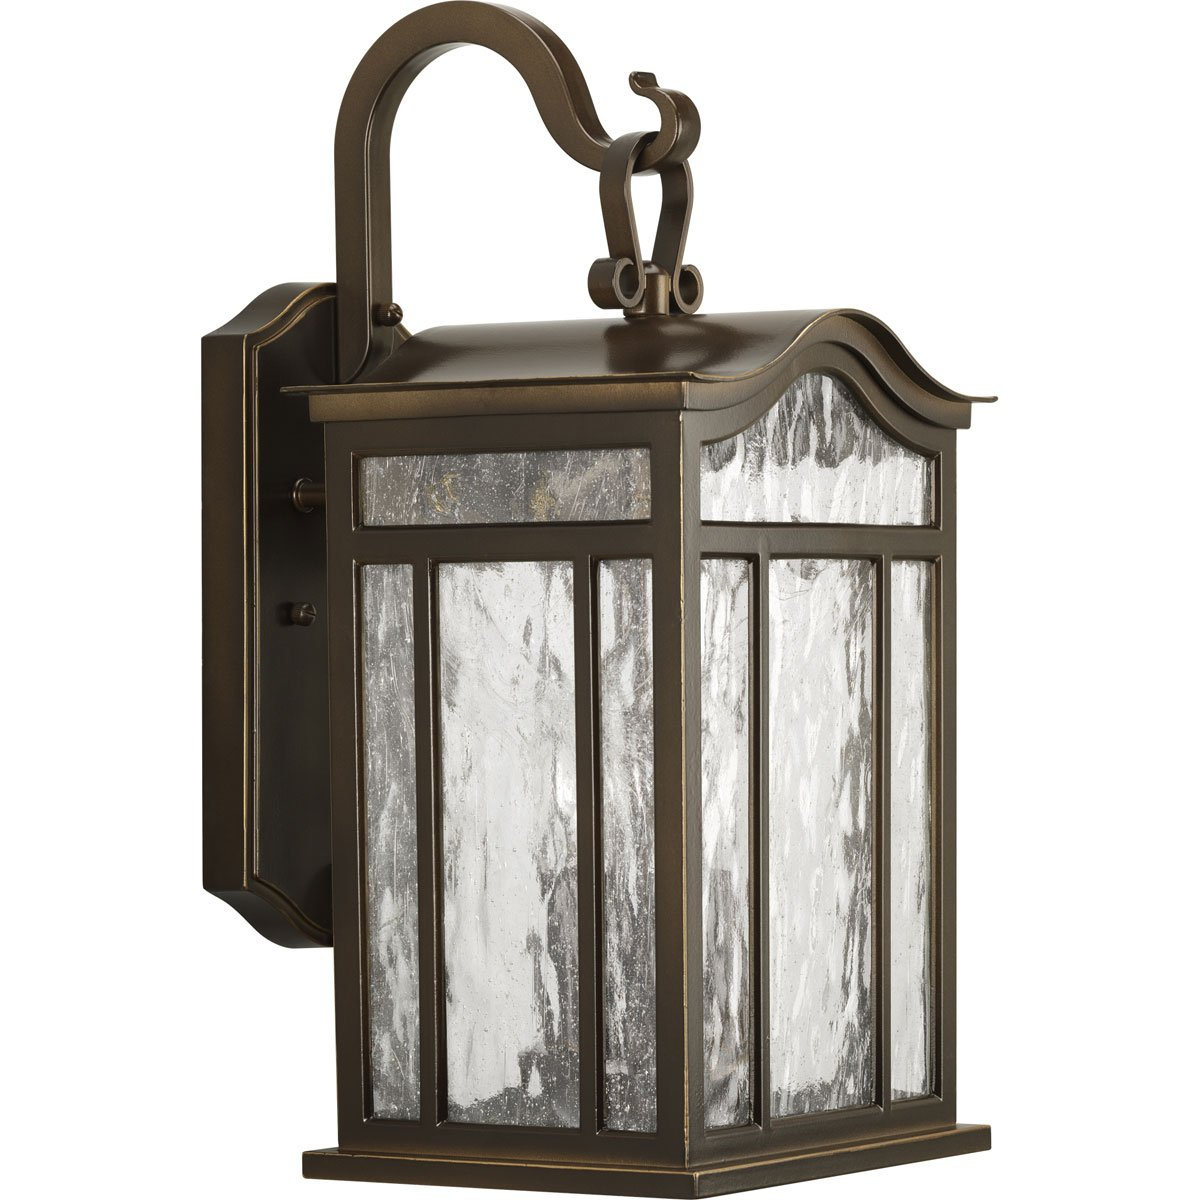 Progress Lighting P5717-108 3-Light Medium Outdoor Wall Lantern with Unique Arched Roof and Top Ribbon Scrolled Loops with Arching Arms, Oil Rubbed Bronze by Progress Lighting [並行輸入品]   B003BNA73S